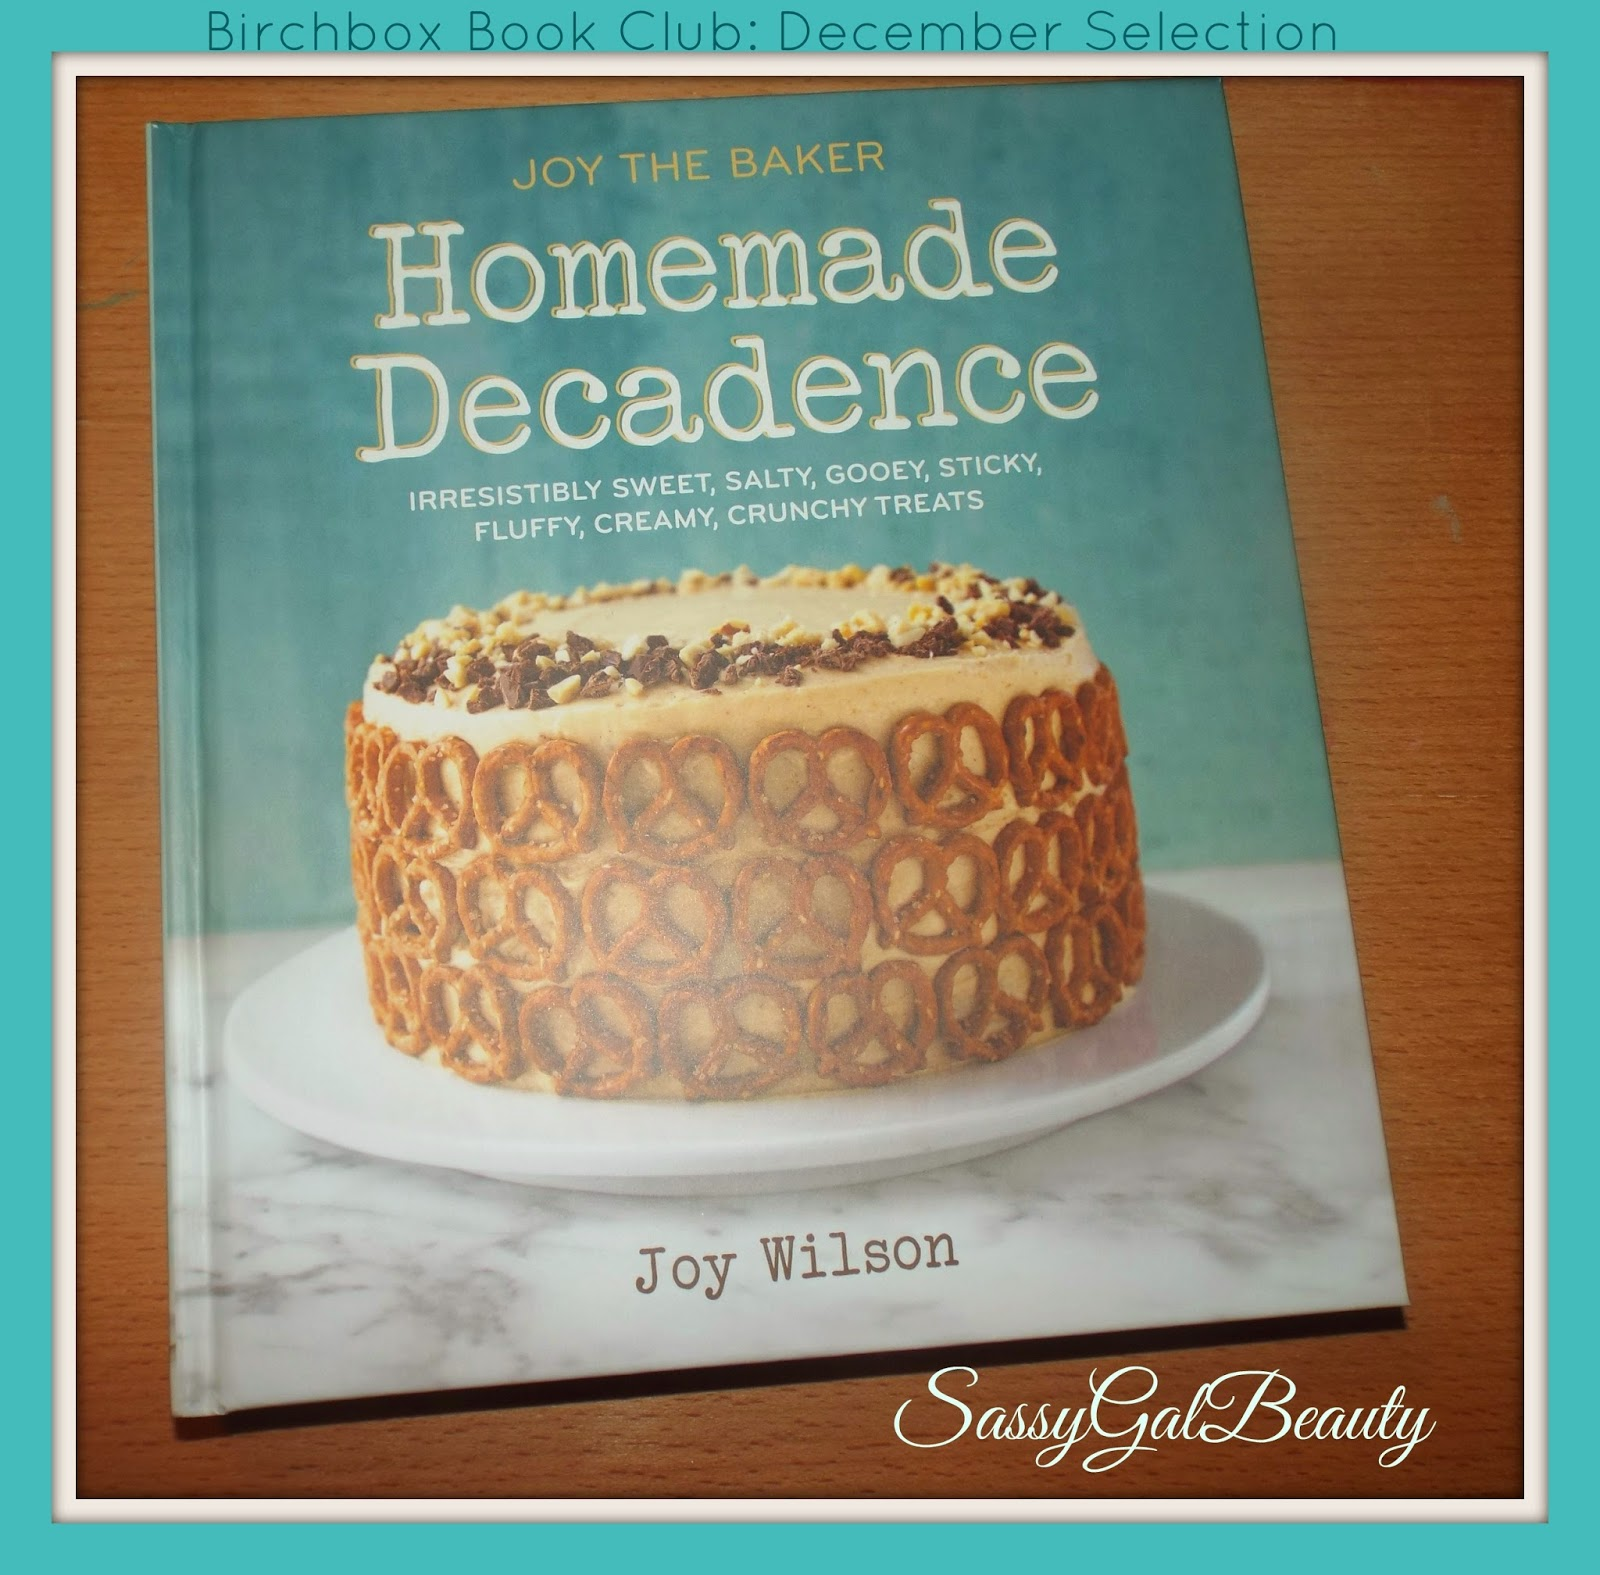 Birchbox Book Club December Selection: Homemade Decadence